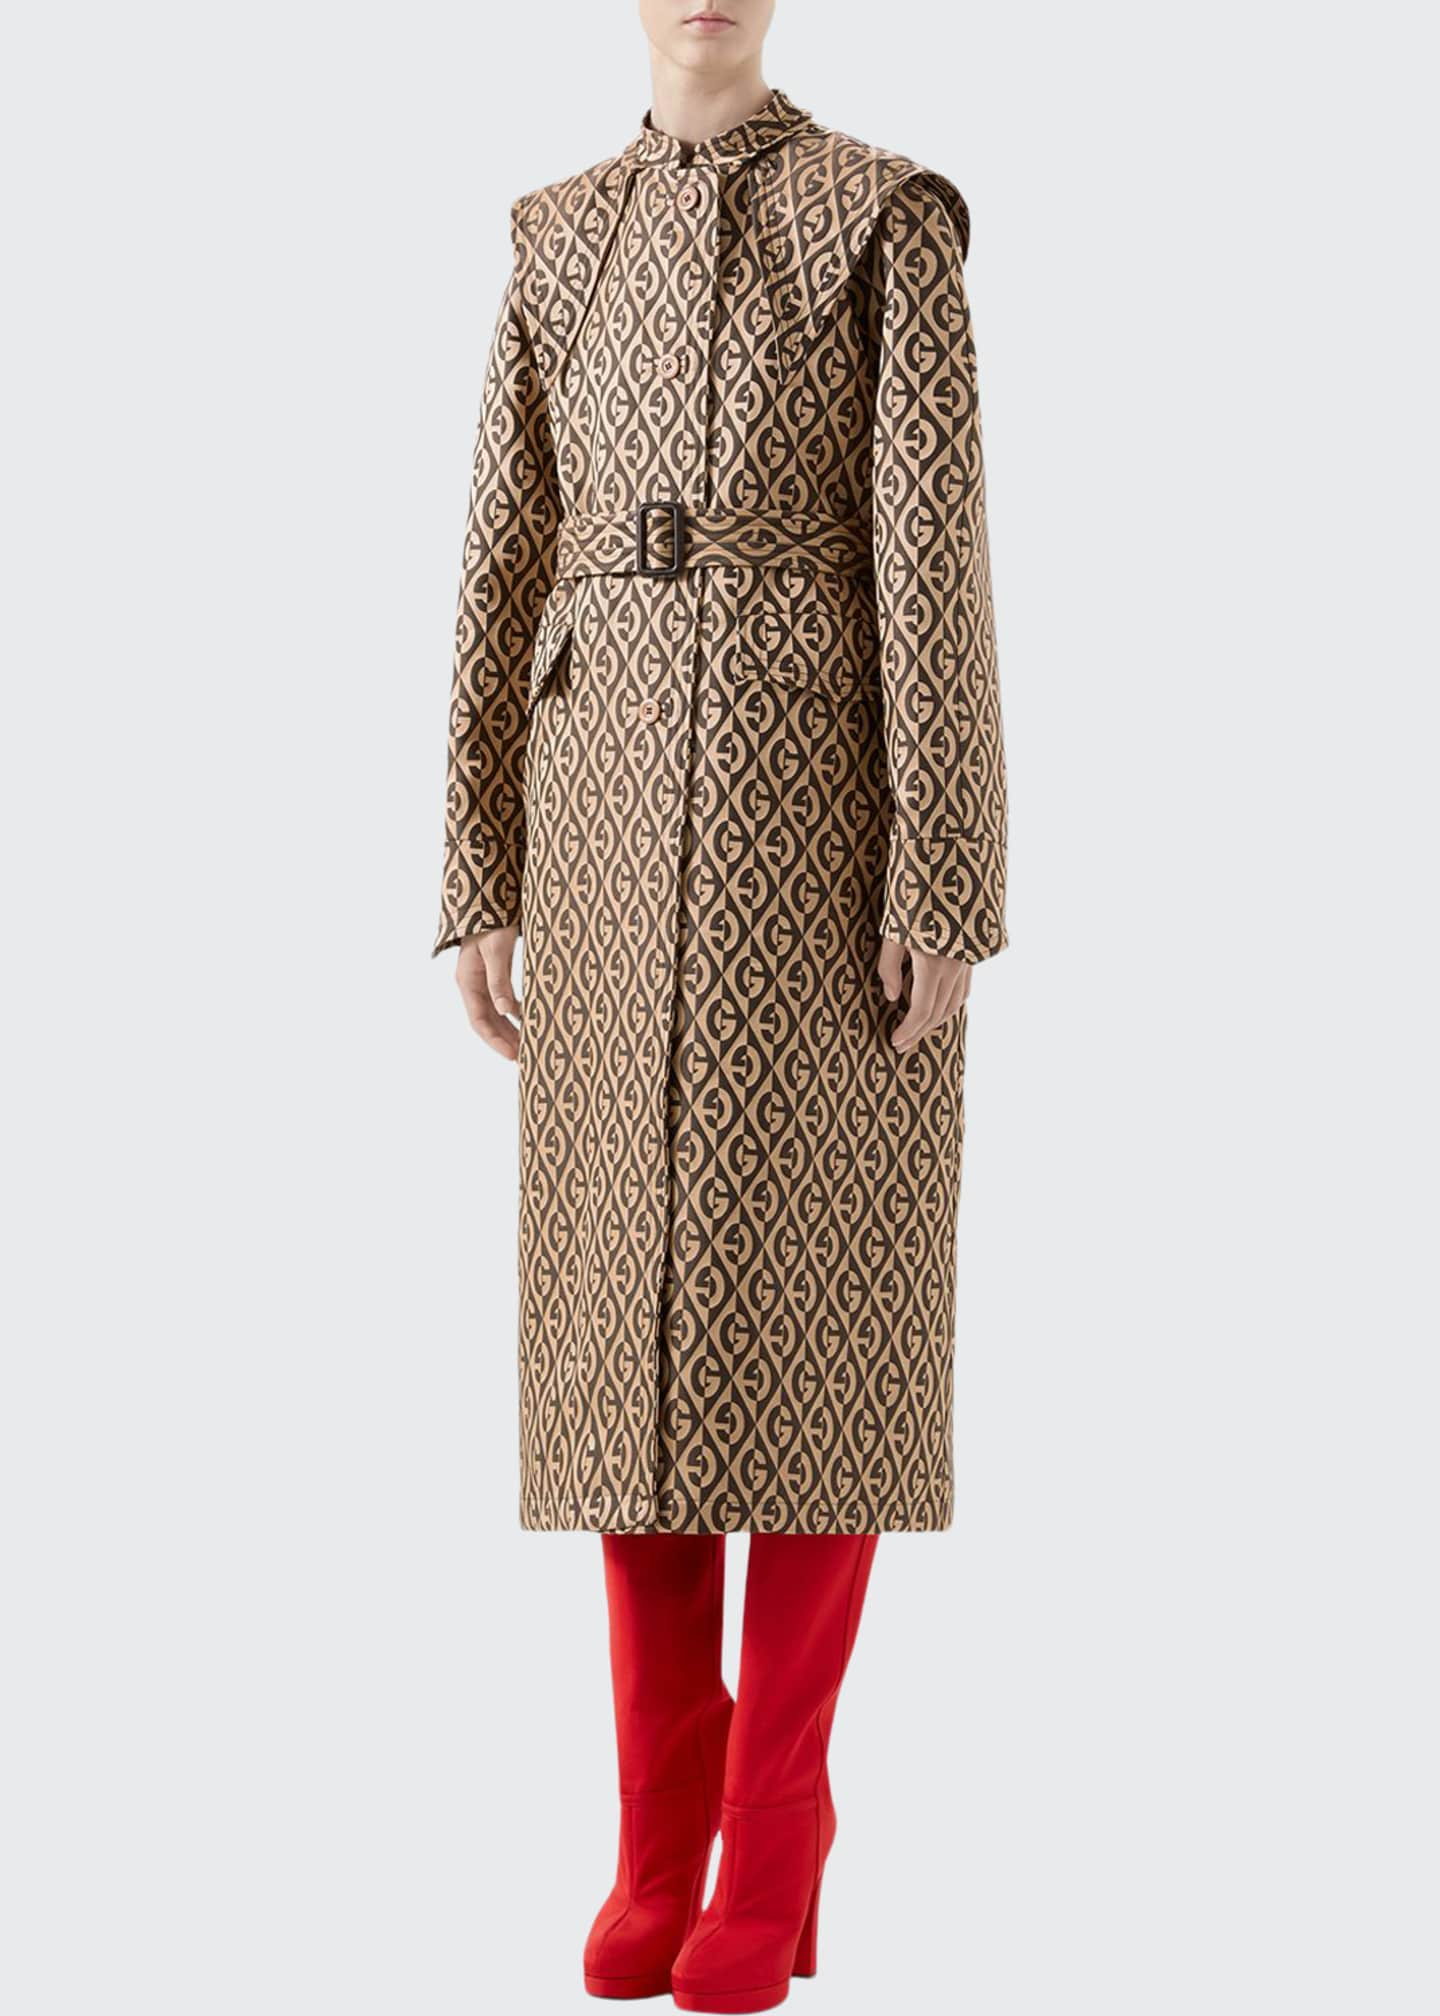 Gucci G Rhombus Jacquard Trench Coat with Exaggerated